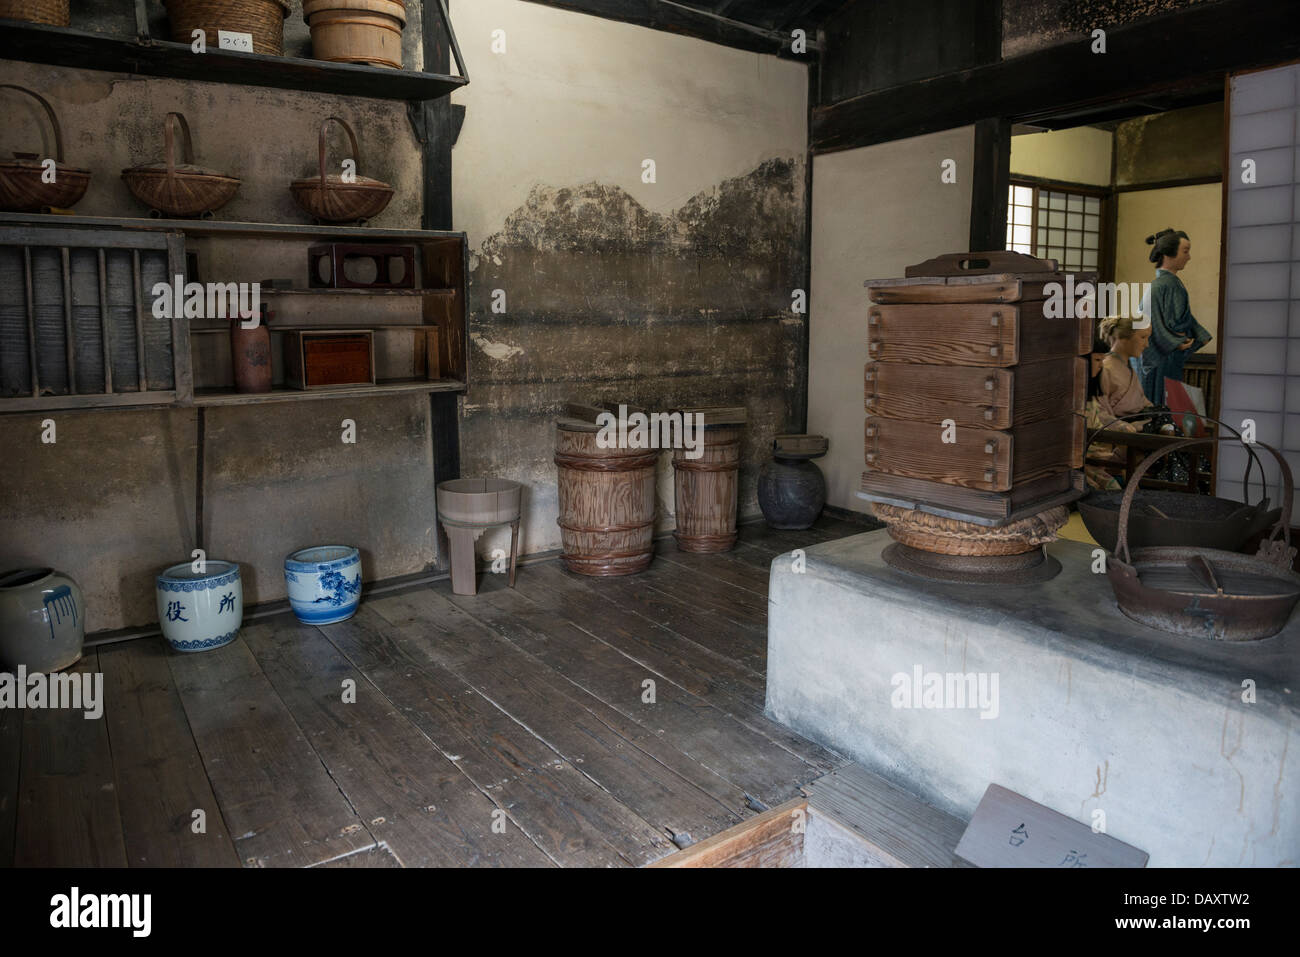 Reconstruction Of A Kitchen Pantry Area Inside A Typical Samurai